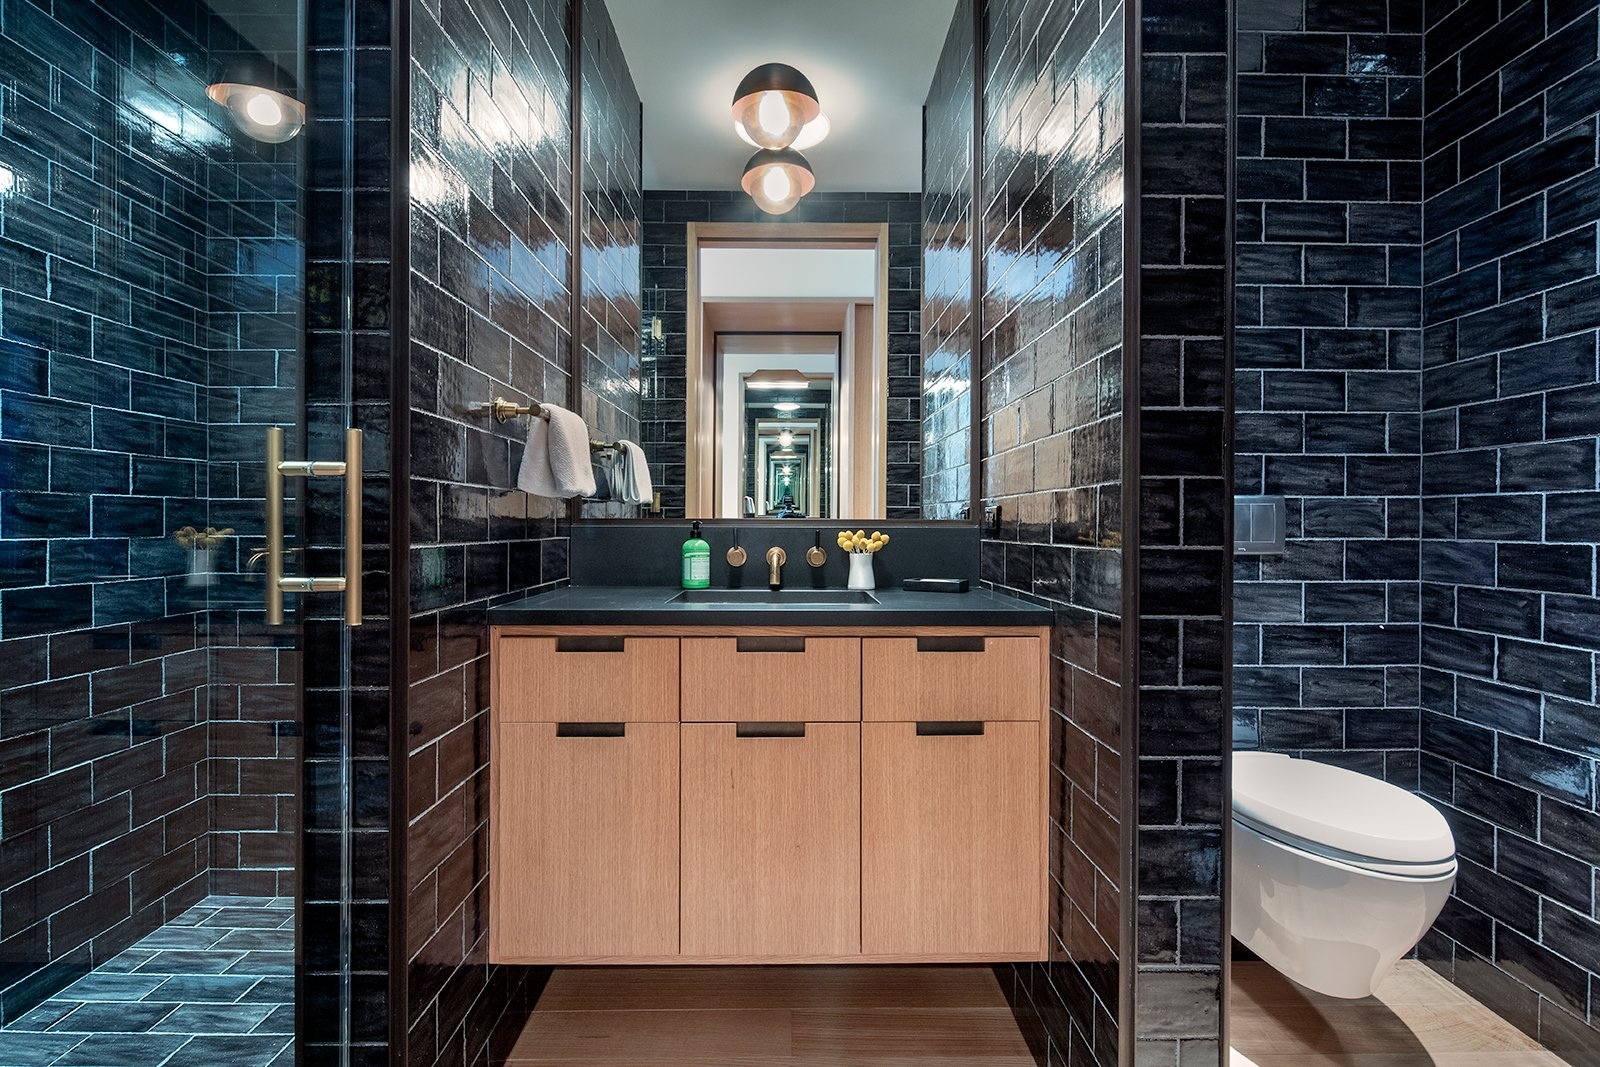 Bath, One Piece, Drop In, Enclosed, Tile, Subway Tile, Light Hardwood, and Wall This bright bedroom has a monochromatic bathroom with a spacious walk-in shower that is covered in sleek subway tiles.      Best Bath Enclosed Wall Tile Photos from An Updated Historic Loft in Manhattan Is Listed For $4.5M